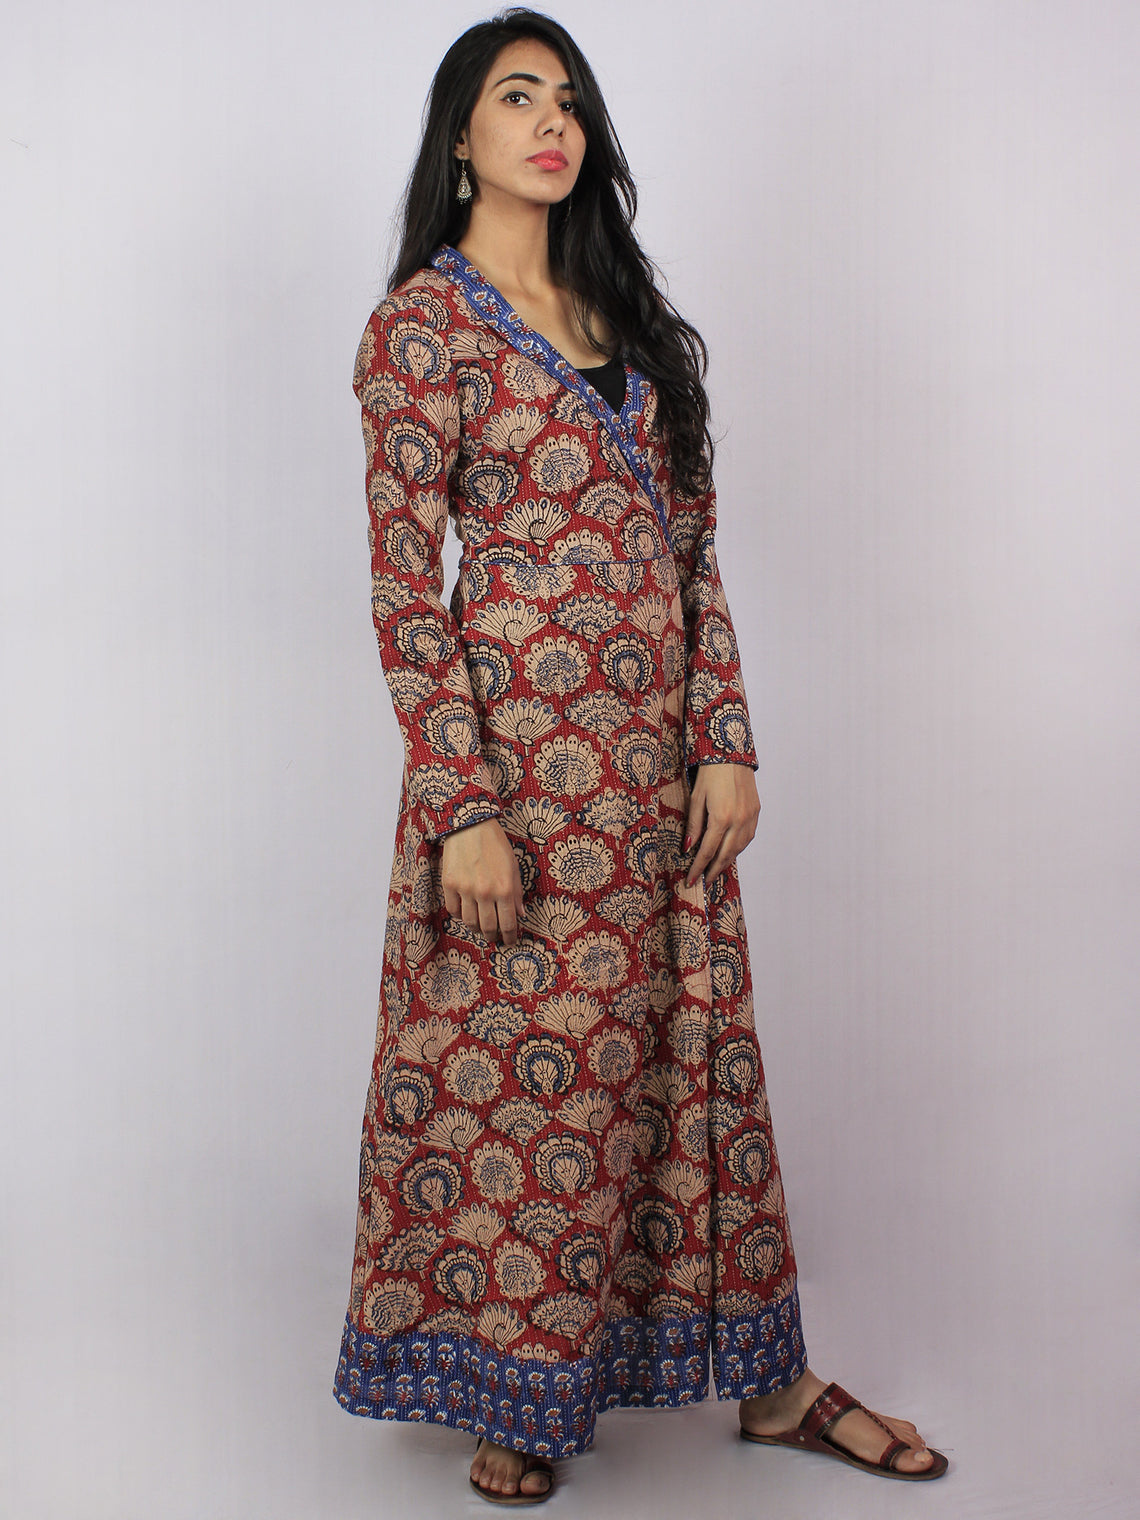 Maroon Beige Blue Black Hand Block Printed Kantha Stitched Long Cotton Angrakha Dress - D2056502